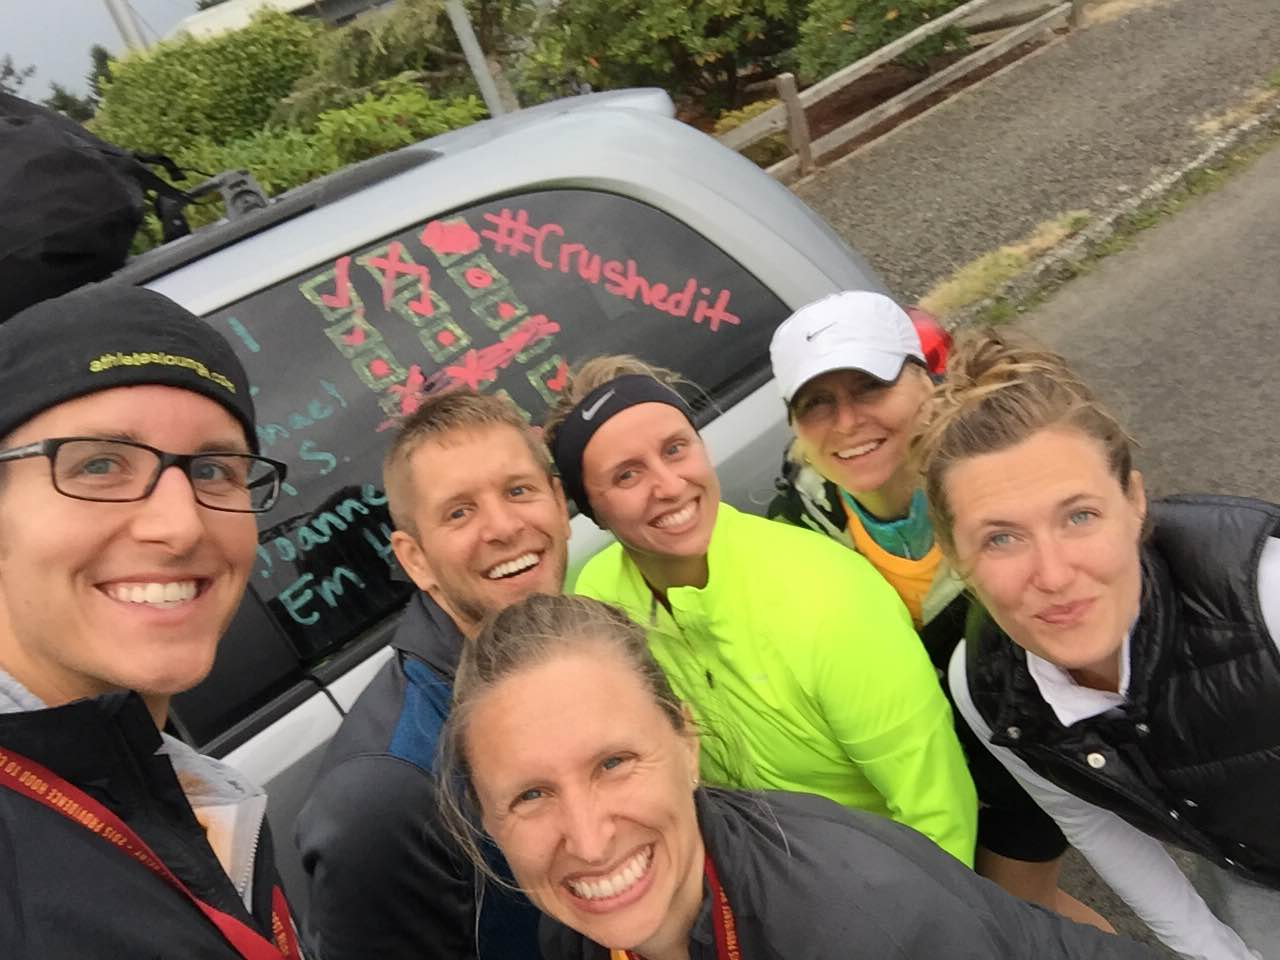 Selfie with the Van 2 runners once we had made it to the coast!